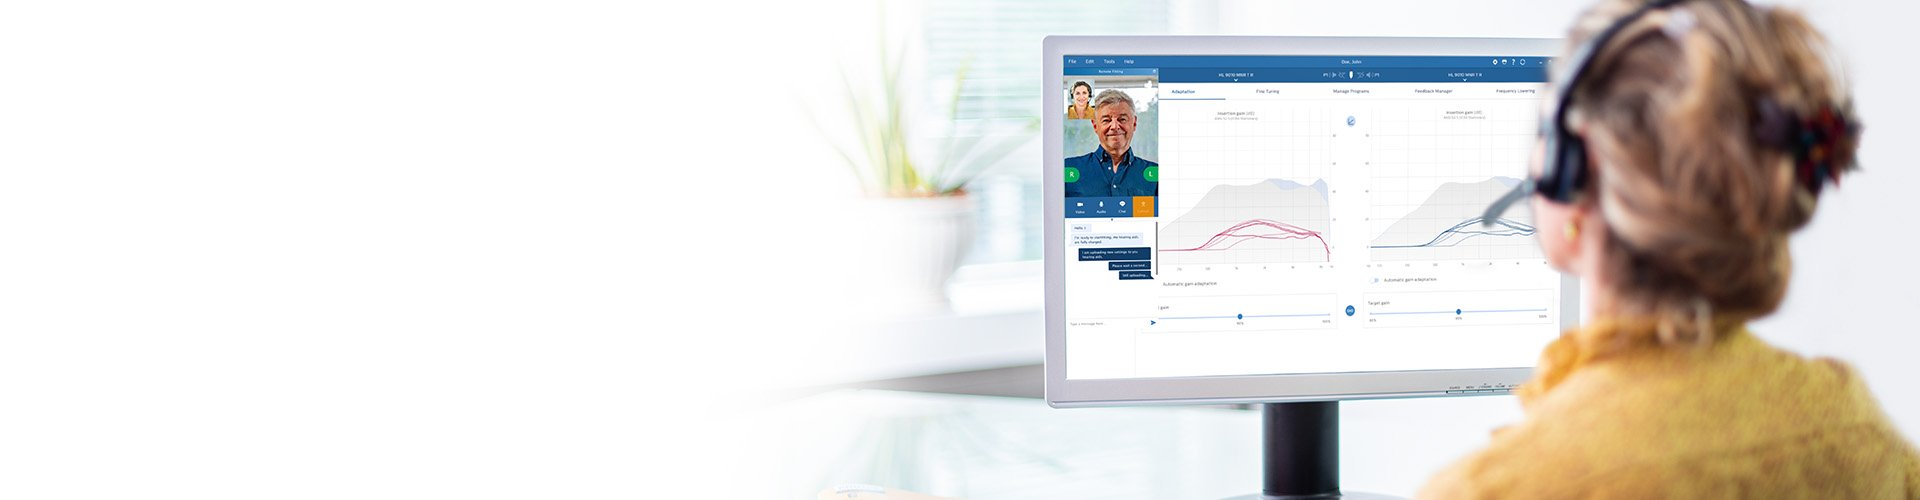 Hearing care professional in an online Remote Fitting session with a Philips HearLink user.